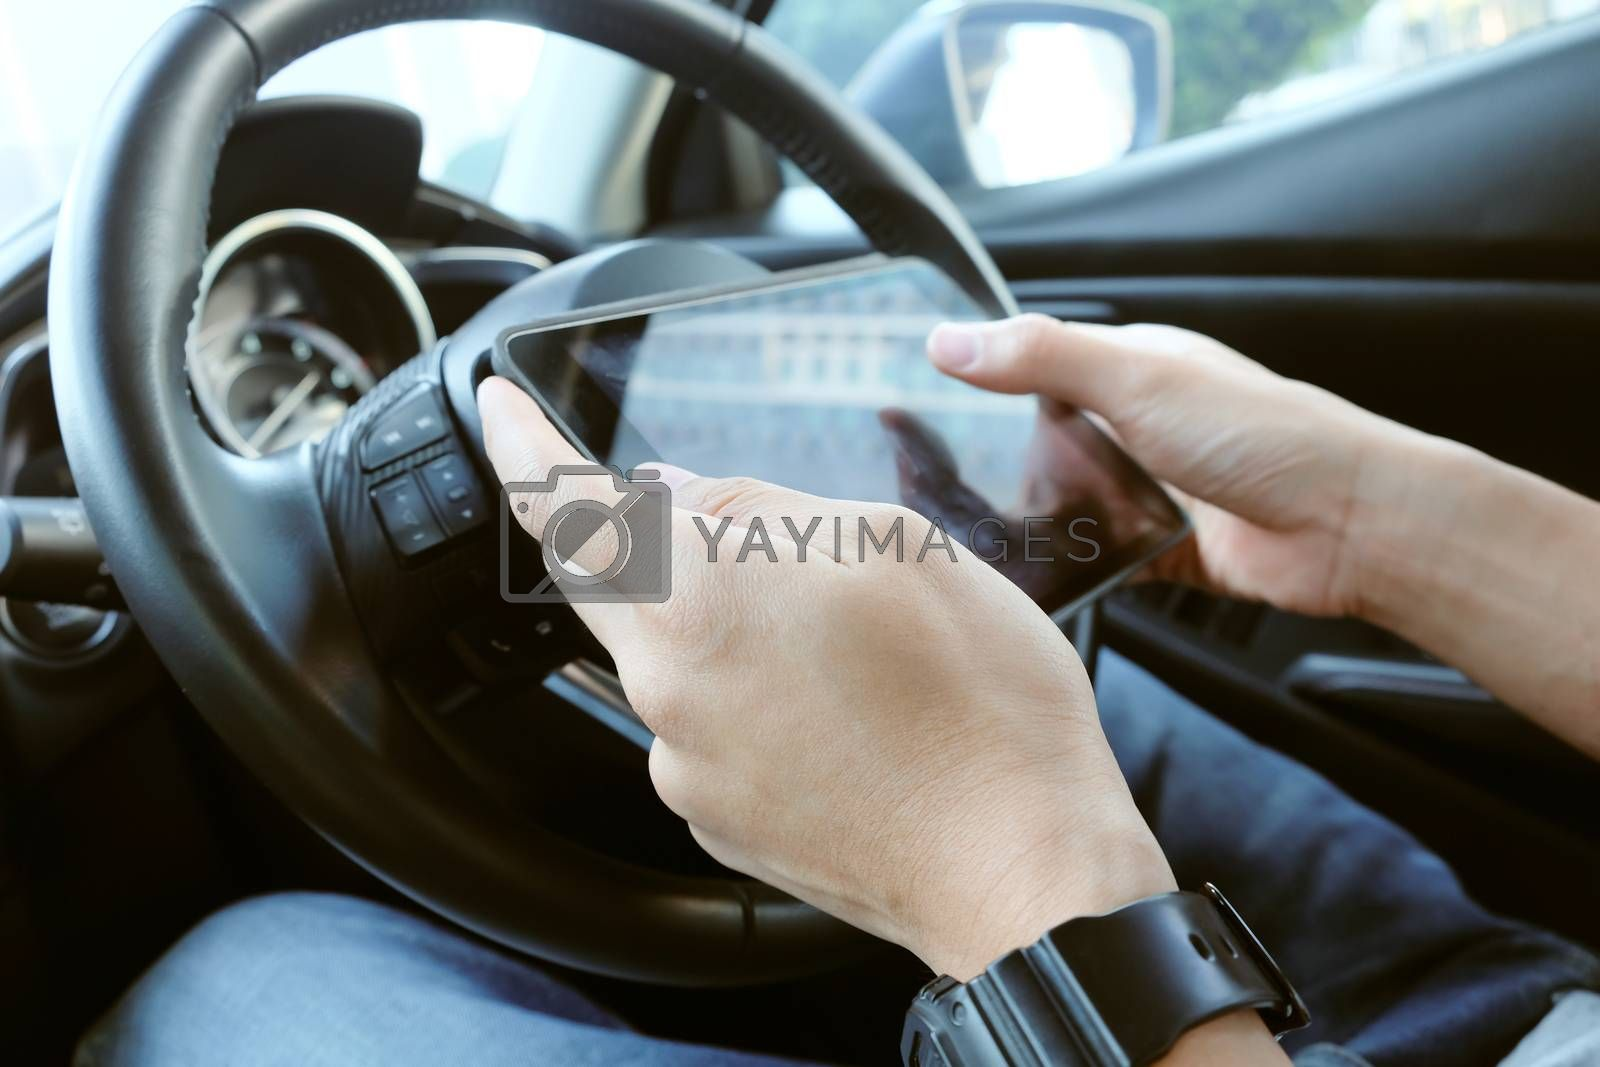 image of using a digital tablet inside of a car.